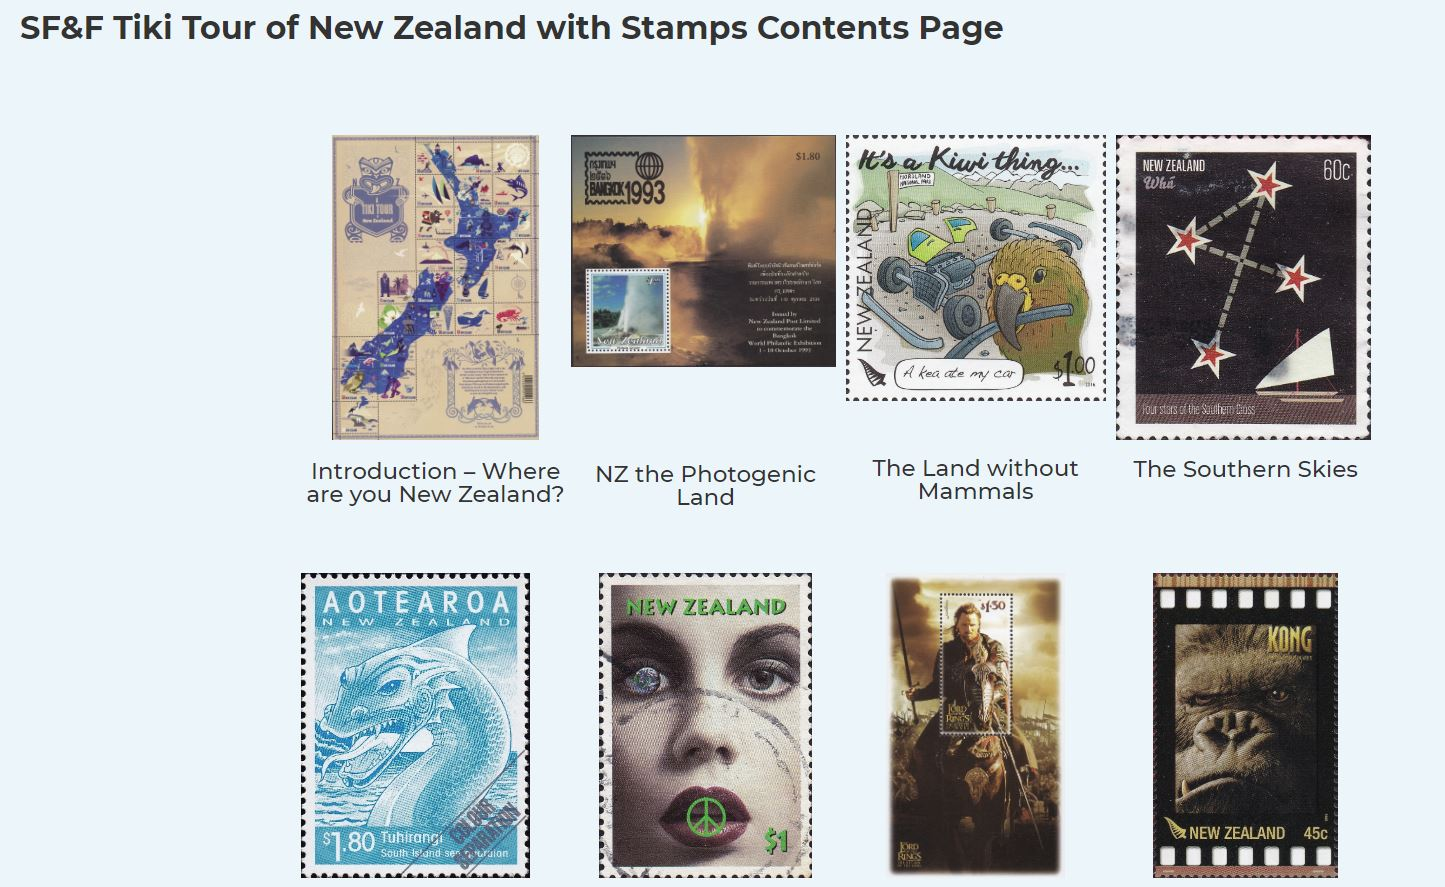 Screenshot from website showing title 'SF&F Tiki Tour of New Zealand with Stamps Contents Page'. Below the title there are 8 stamps with subtitles showing different aspects of New Zealand.